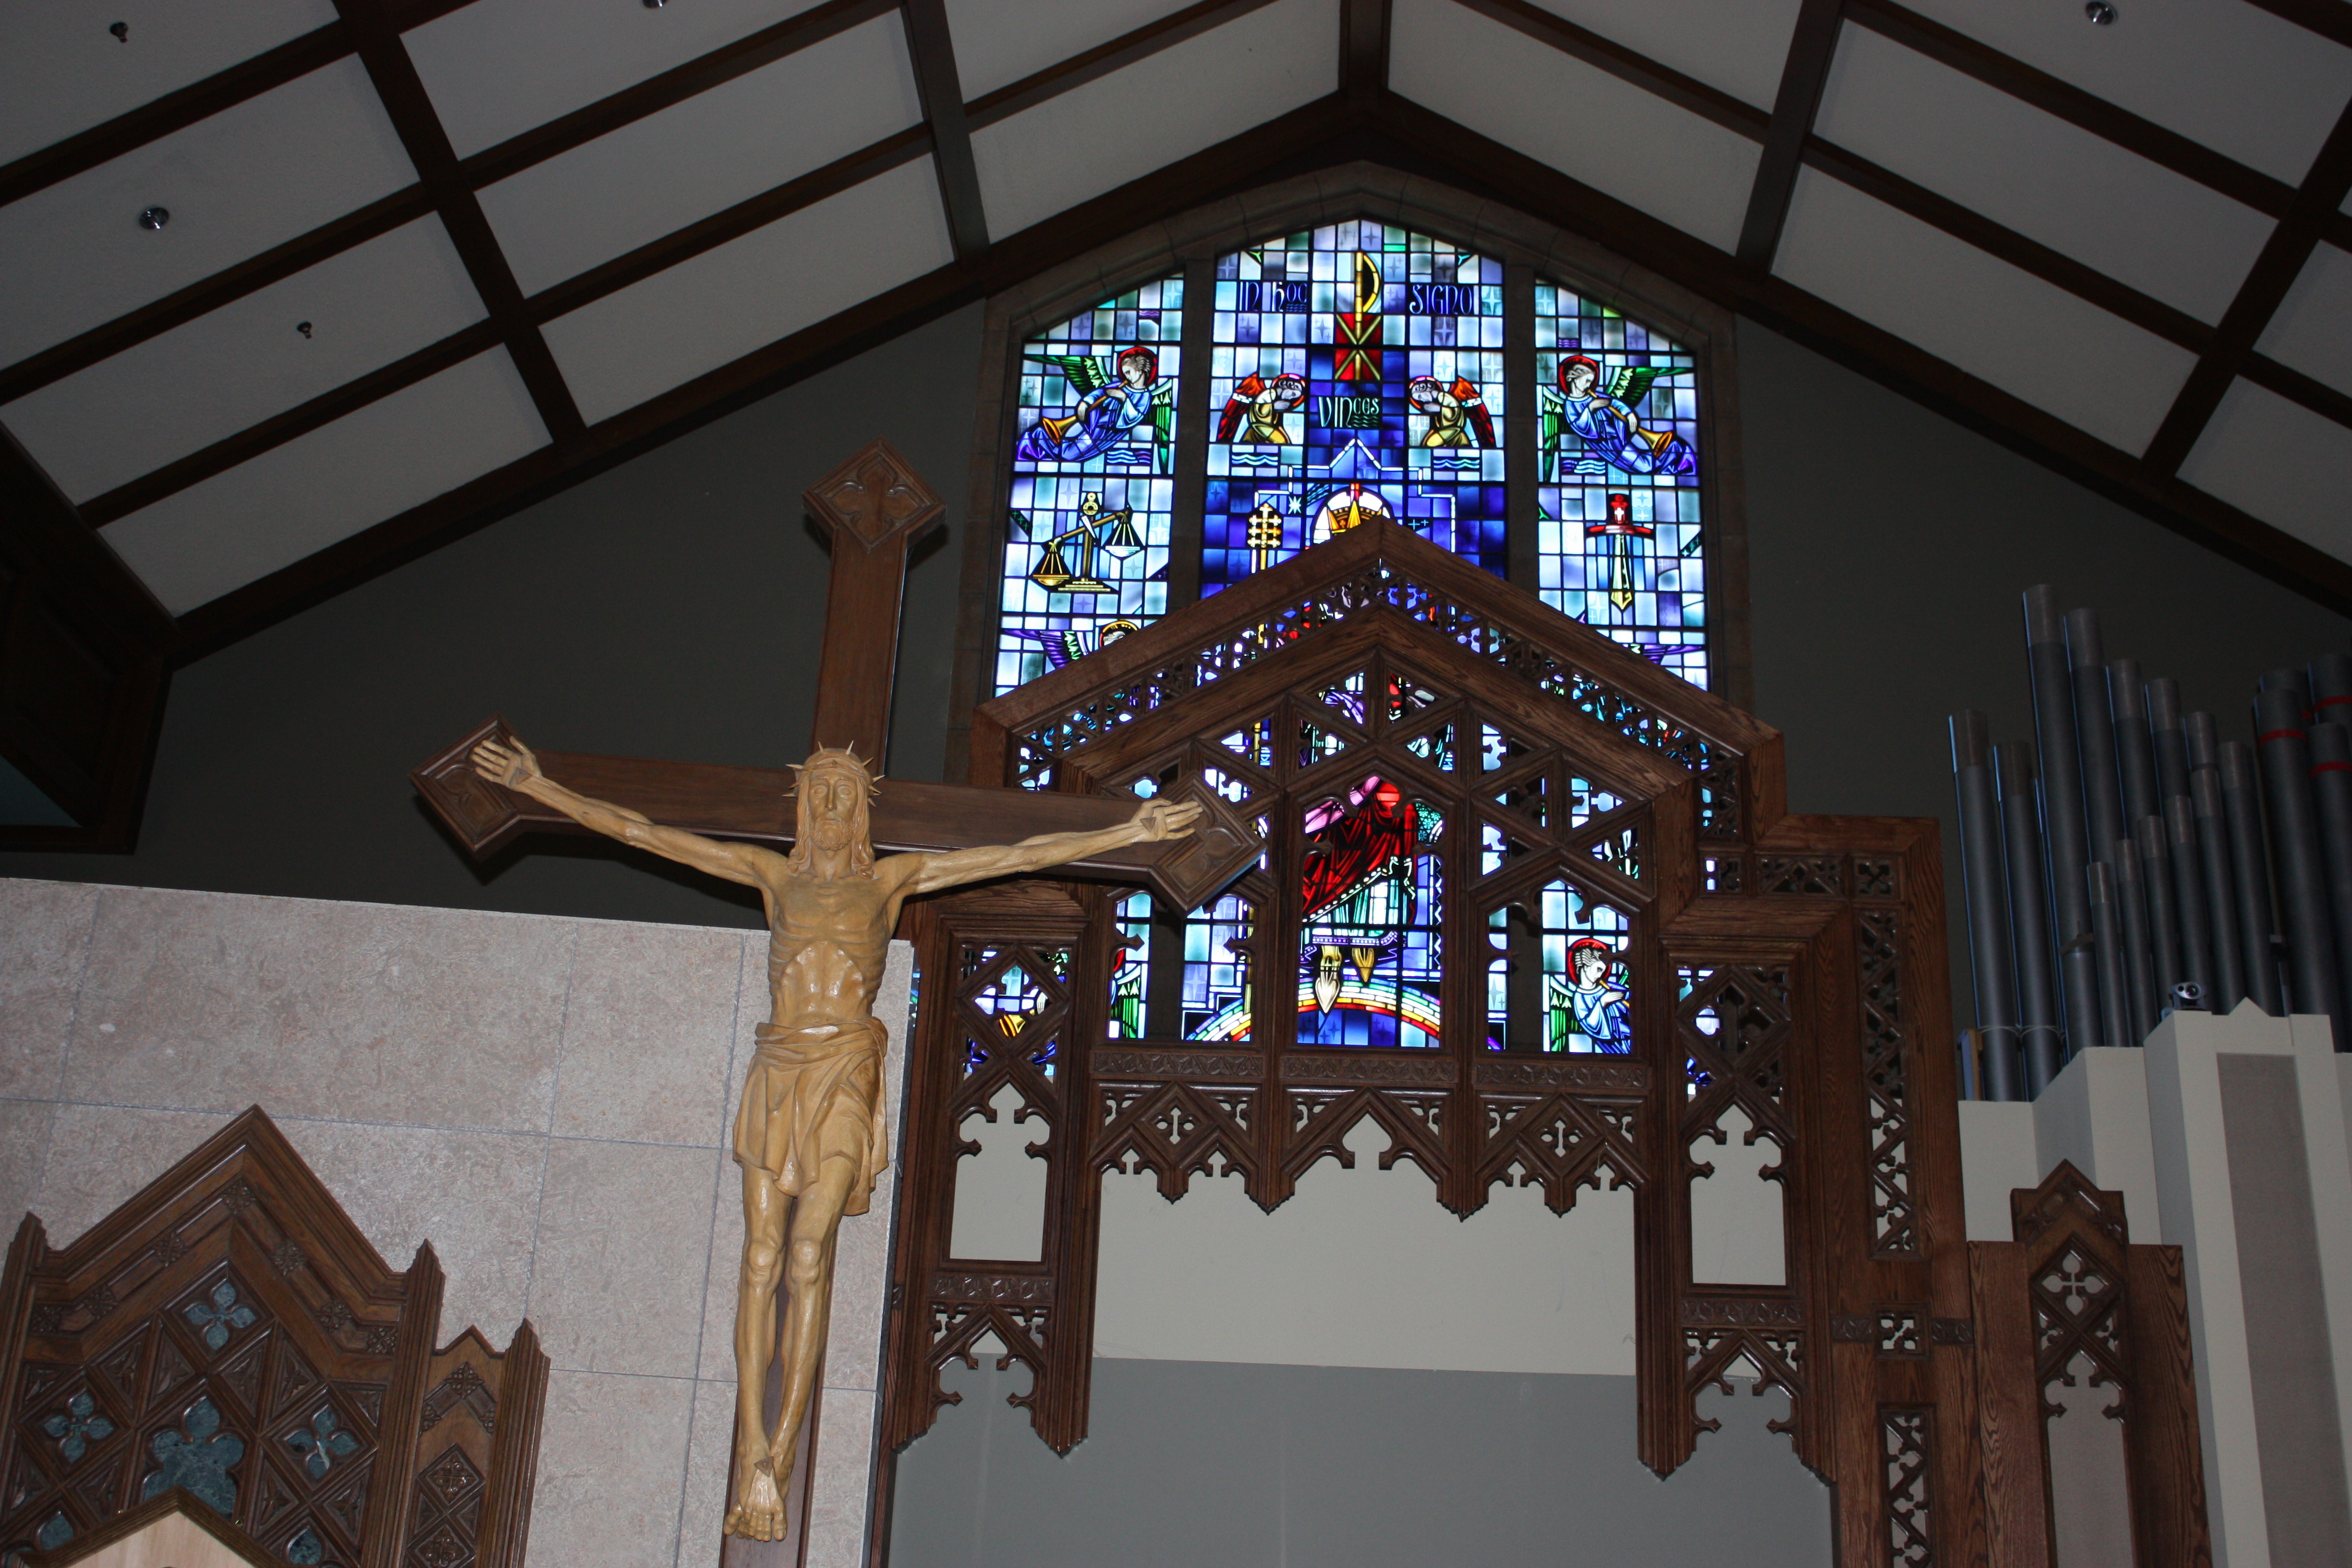 Distanced view of wooden window frame with Christ on cross in foreground